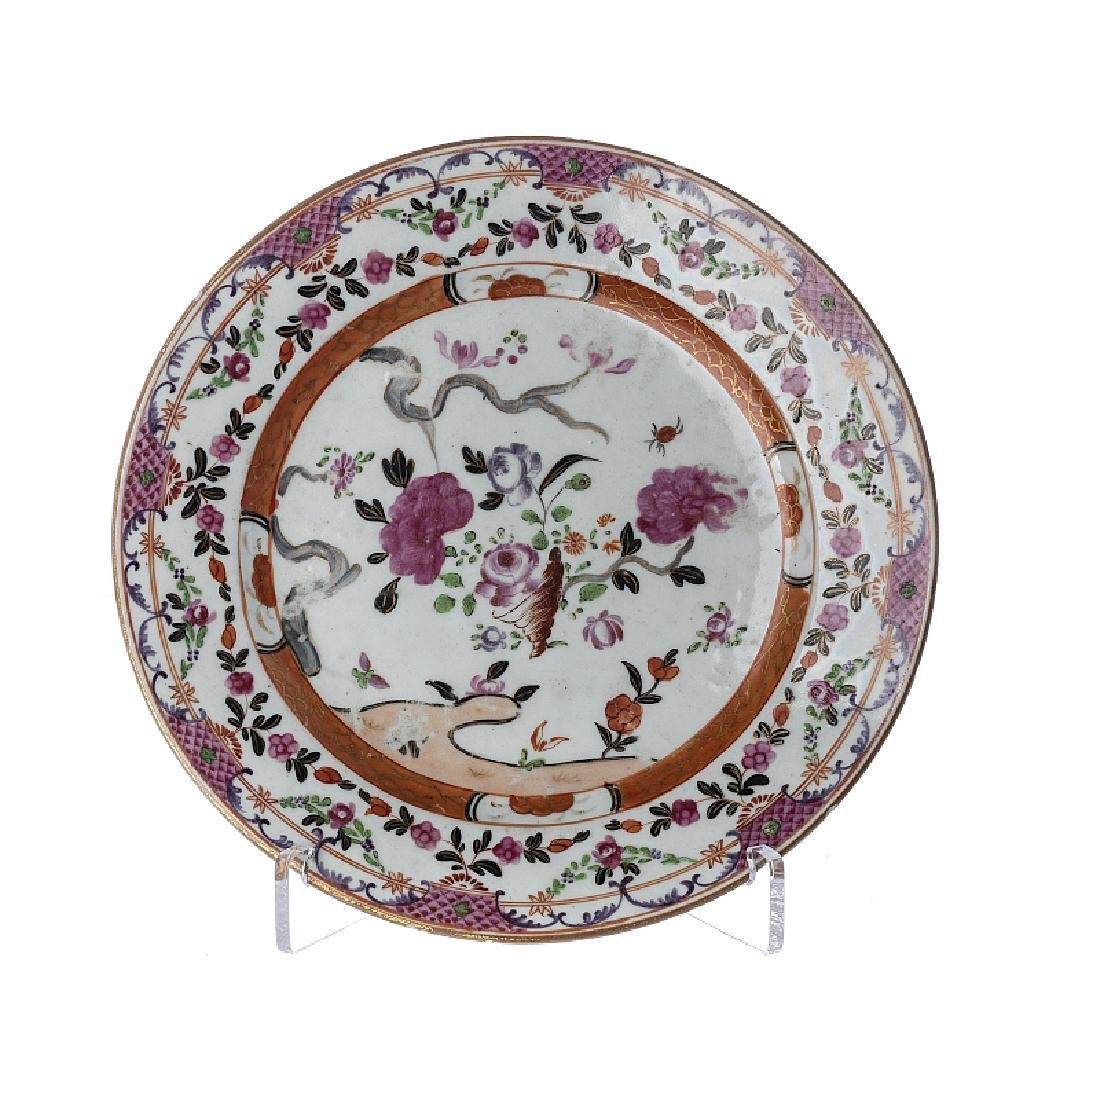 Plate in Chinese famille rose porcelain